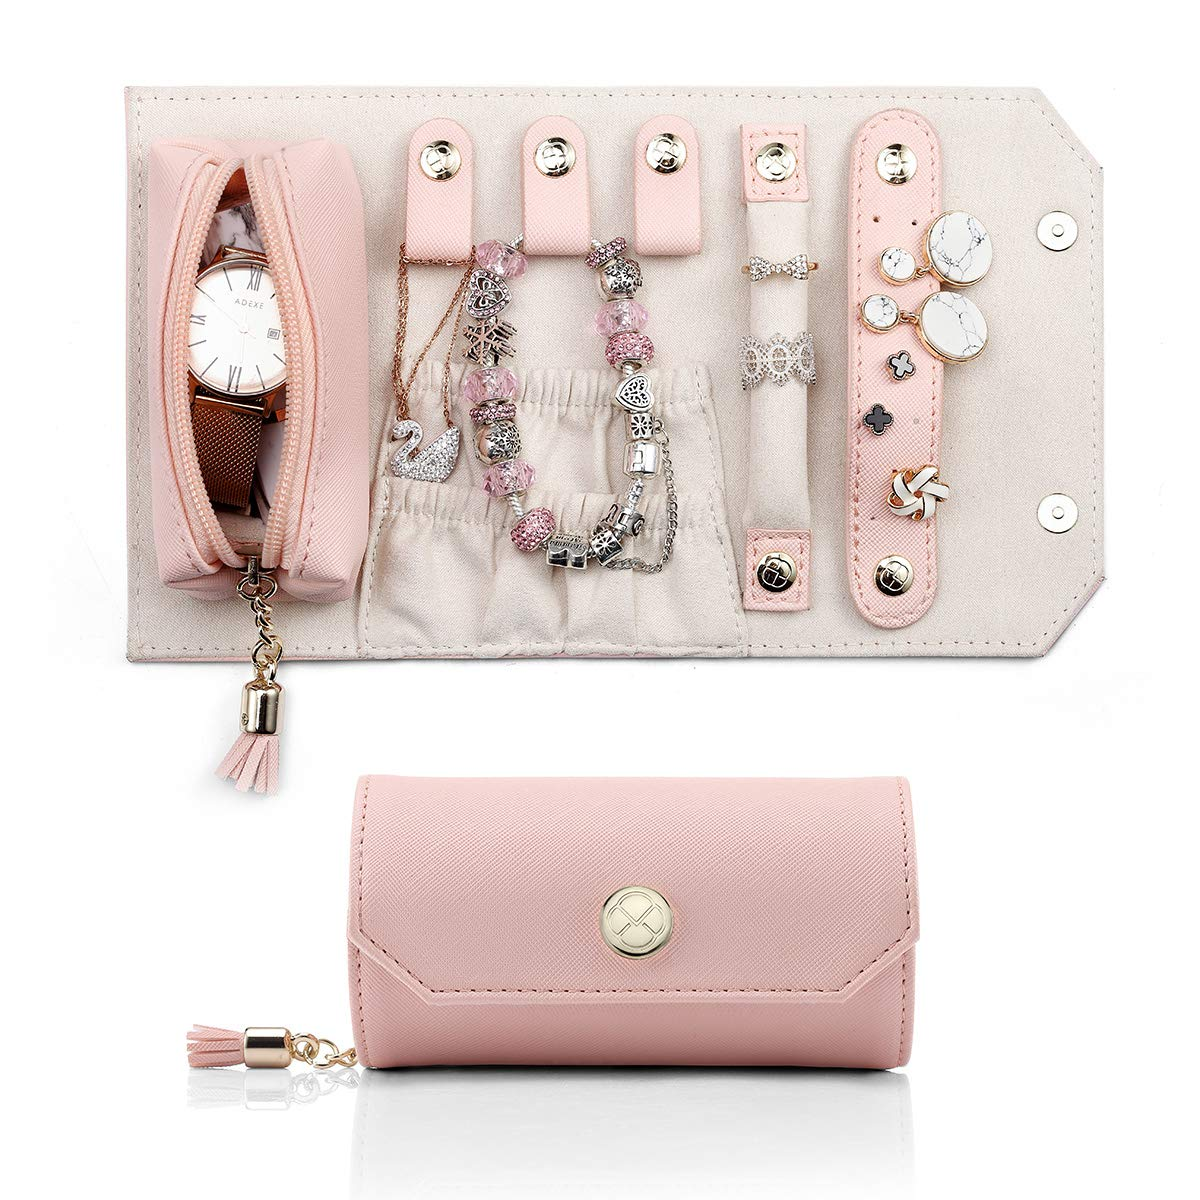 Vlando Portable Jewelry Roll for Travel, Mini Size & Light Weight Jewelry Storage Organizer Bag for Daily Jewelries for Bracelets, Earrings, Rings (Sweet Pink)